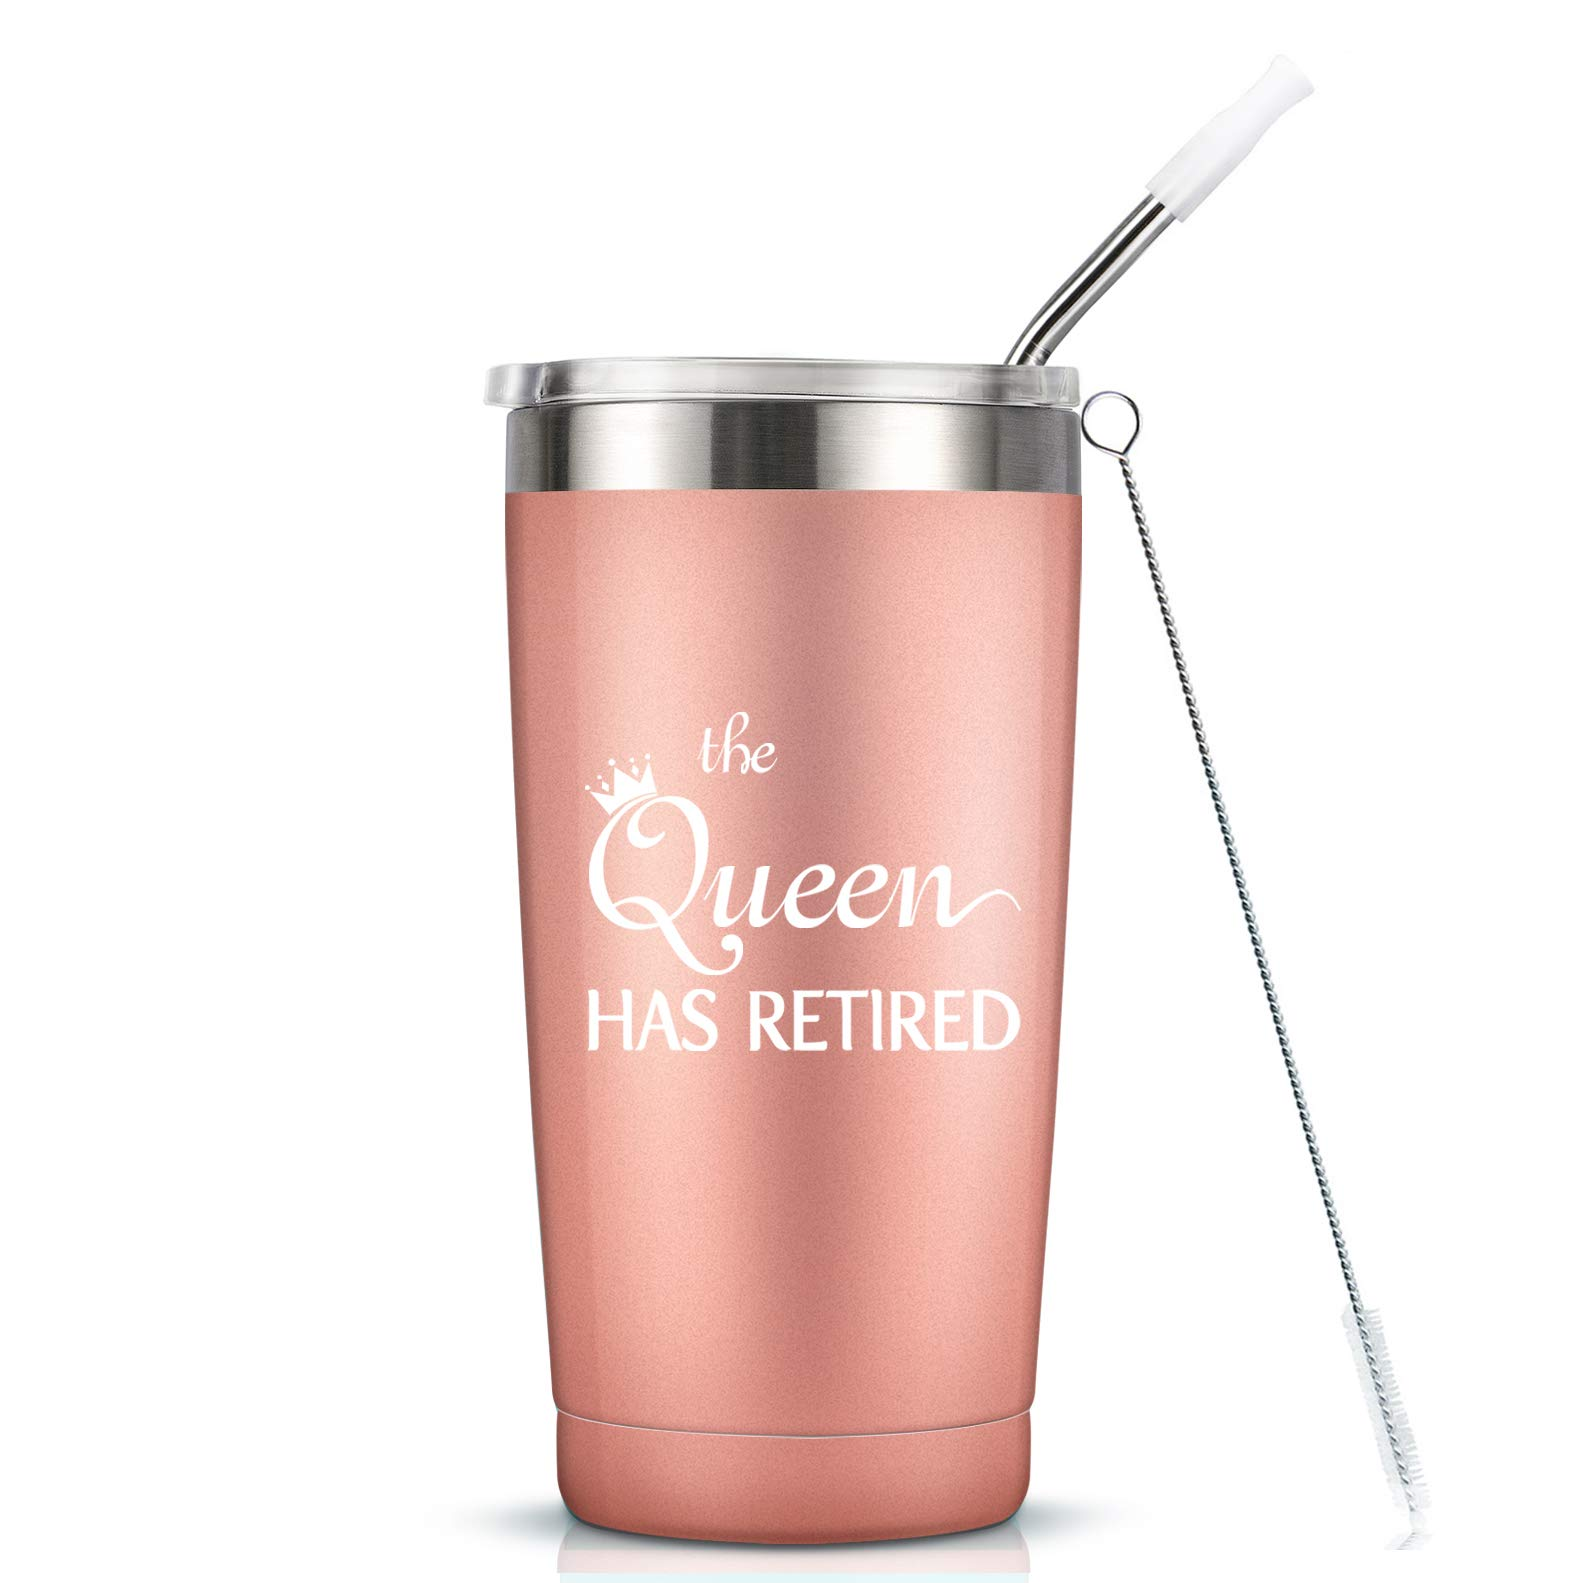 Retirement Gifts for Women Her Coworker - The Queen Has Retired Gift Cup - 20 Oz Insulated Stainless Steel Mug Tumbler with Lid for Mom Grandma Sister Friend Auntie by MASGALACC